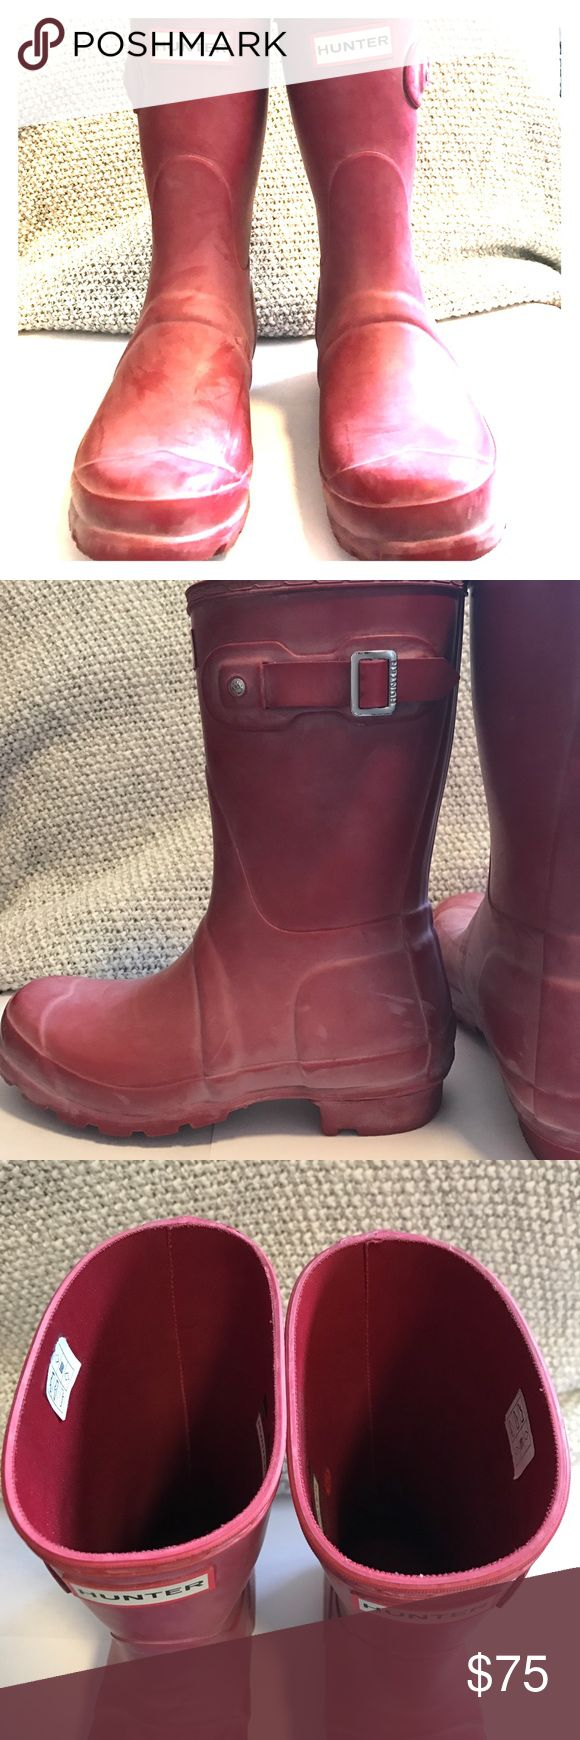 Short Military Red Hunter Boots Size 6, short military red Hunter rain boots. Sparingly worn over two seasons, with no damage to the outside of the boots. The inside sole is a bit scuffed, and they do have some discoloration from salt, but that can be washed away fairly easily. Hunter Shoes Winter & Rain Boots